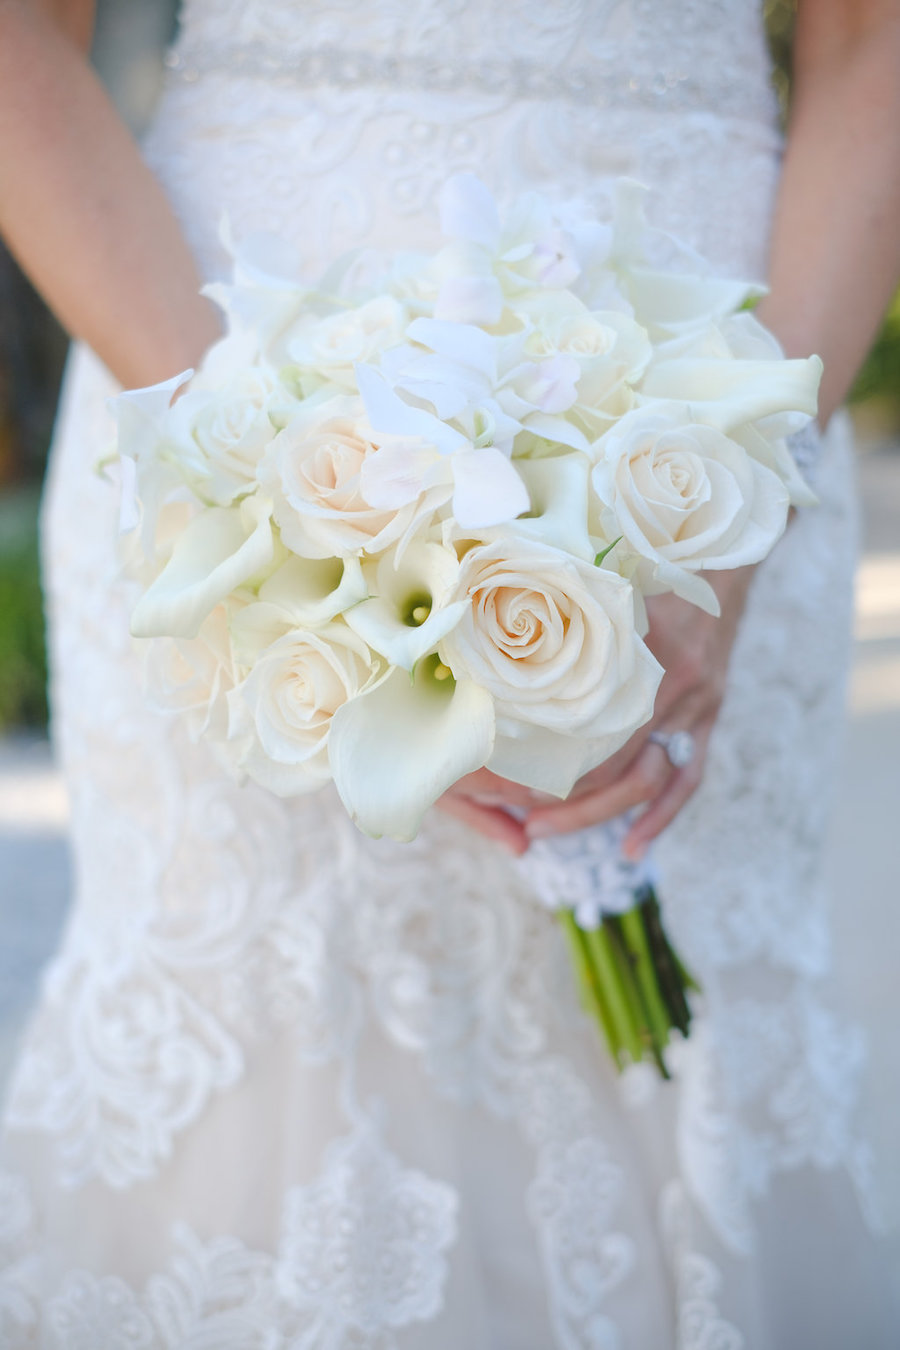 Blush And Ivory Rose Bridal Wedding Bouquet And Lace Allure Bridal